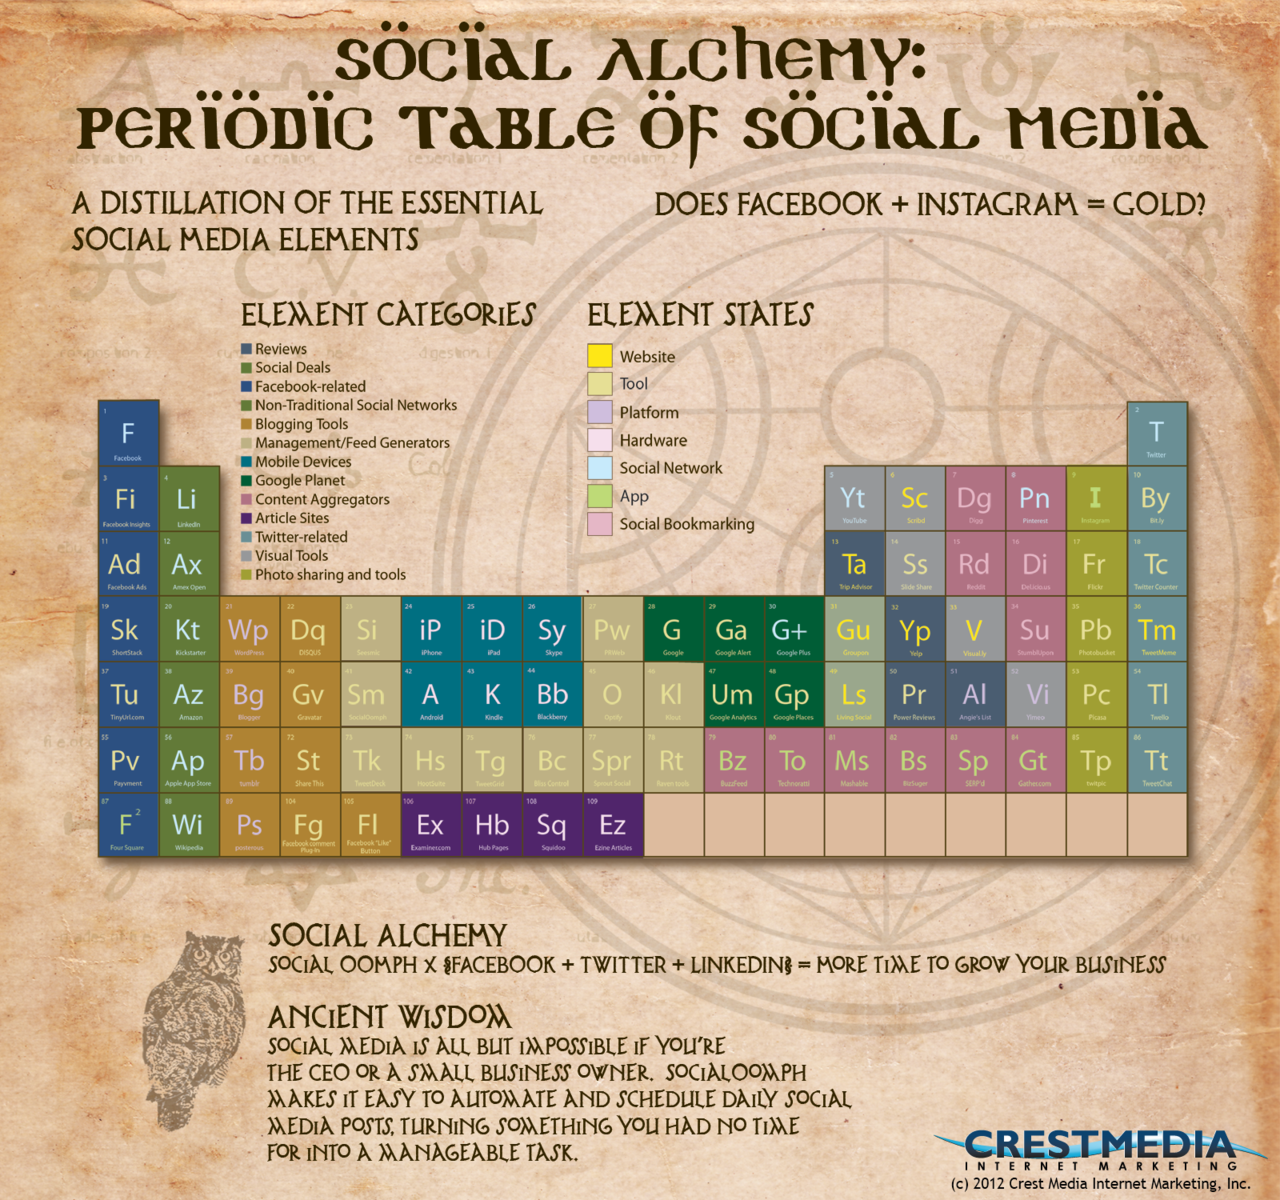 Social Alchemy: Social Media Marketing Elements & Compounds